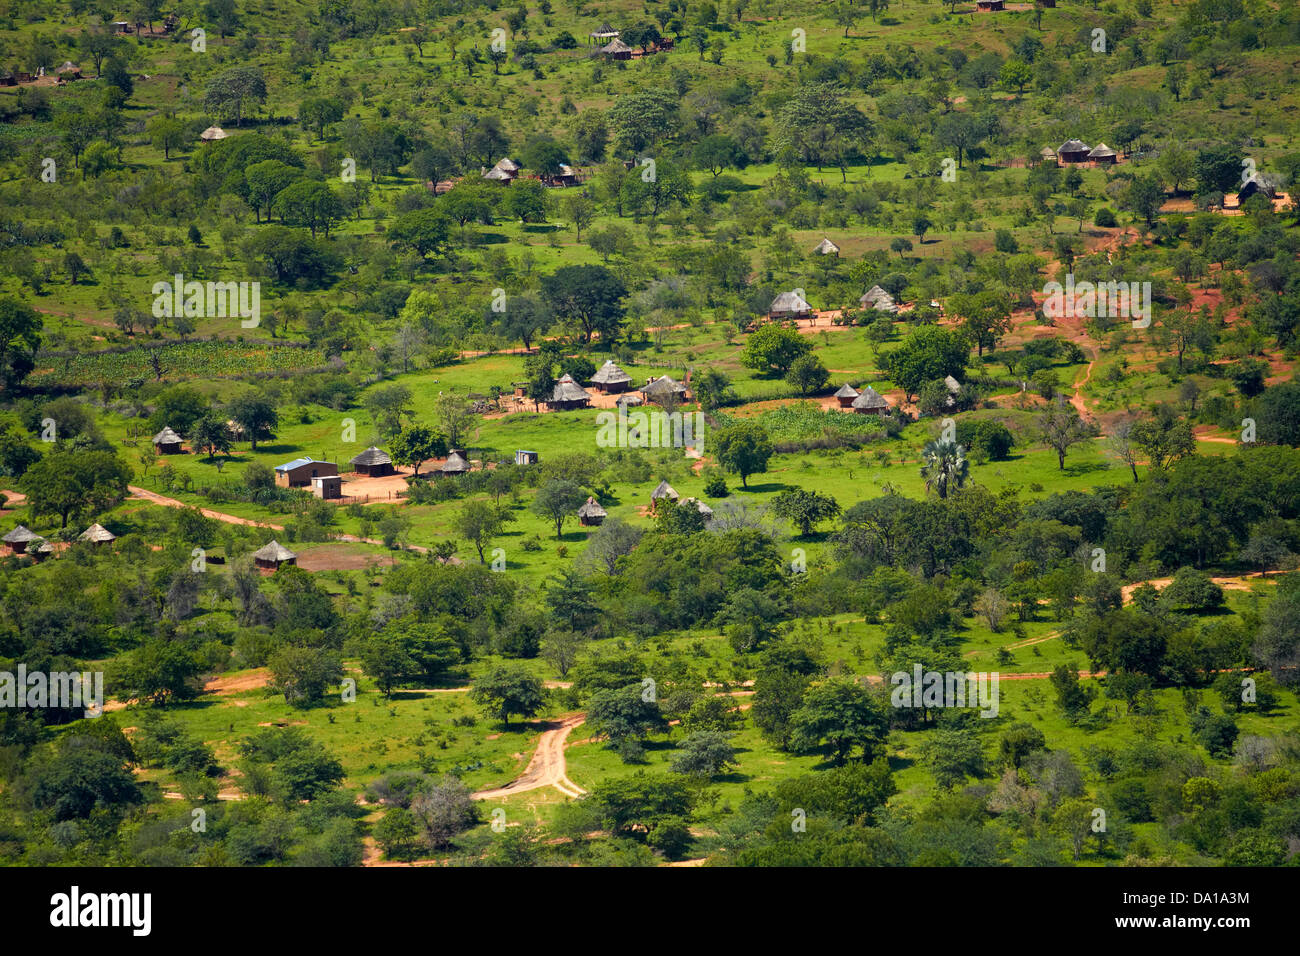 southern home mobile homes html with Stock Photo Traditional African Village Near Victoria Falls Zimbabwe Africa Aerial 57807560 on Raw Video Fire In Santa Clarita Los Angeles 309105261 furthermore Stock Photo Traditional African Village Near Victoria Falls Zimbabwe Africa Aerial 57807560 likewise 1979 Robinhood Sportsman Rv Motorhome Dodge F40 24565721 in addition 07hours besides 29iht Remumbai29.